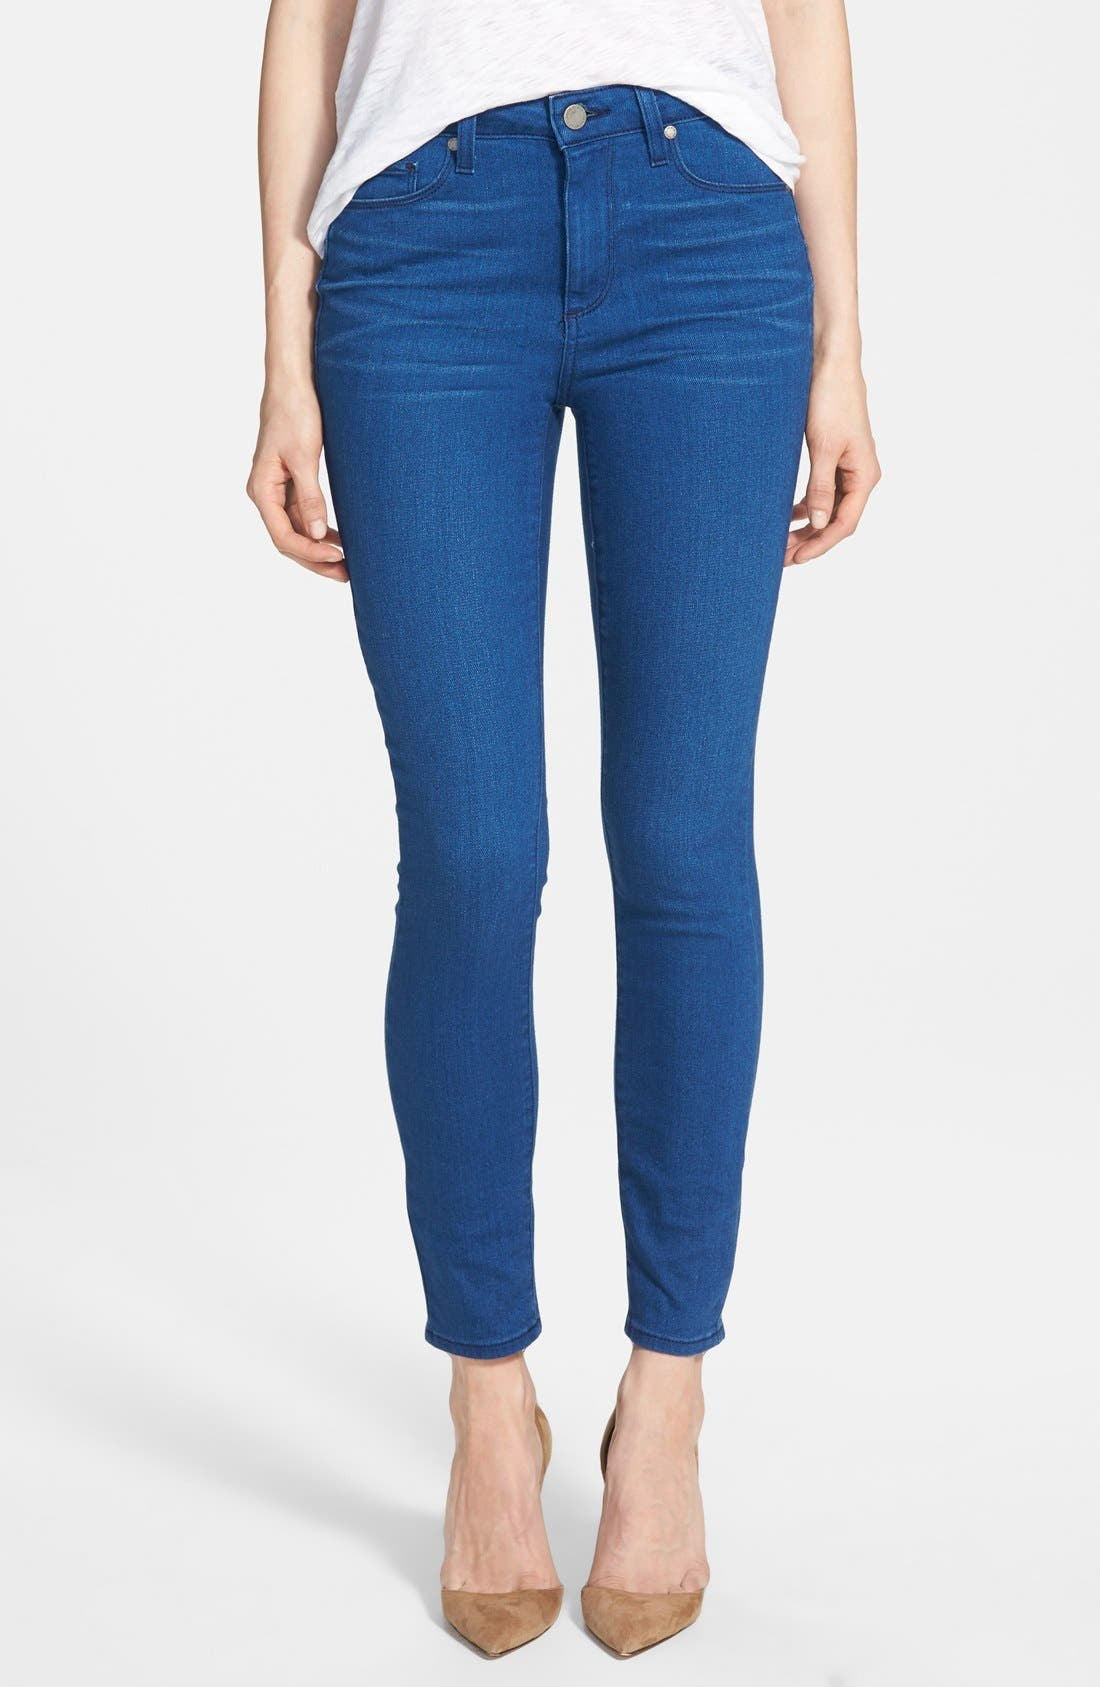 Main Image - Paige Denim 'Hoxton' Ankle Skinny Jeans (Frenchie)